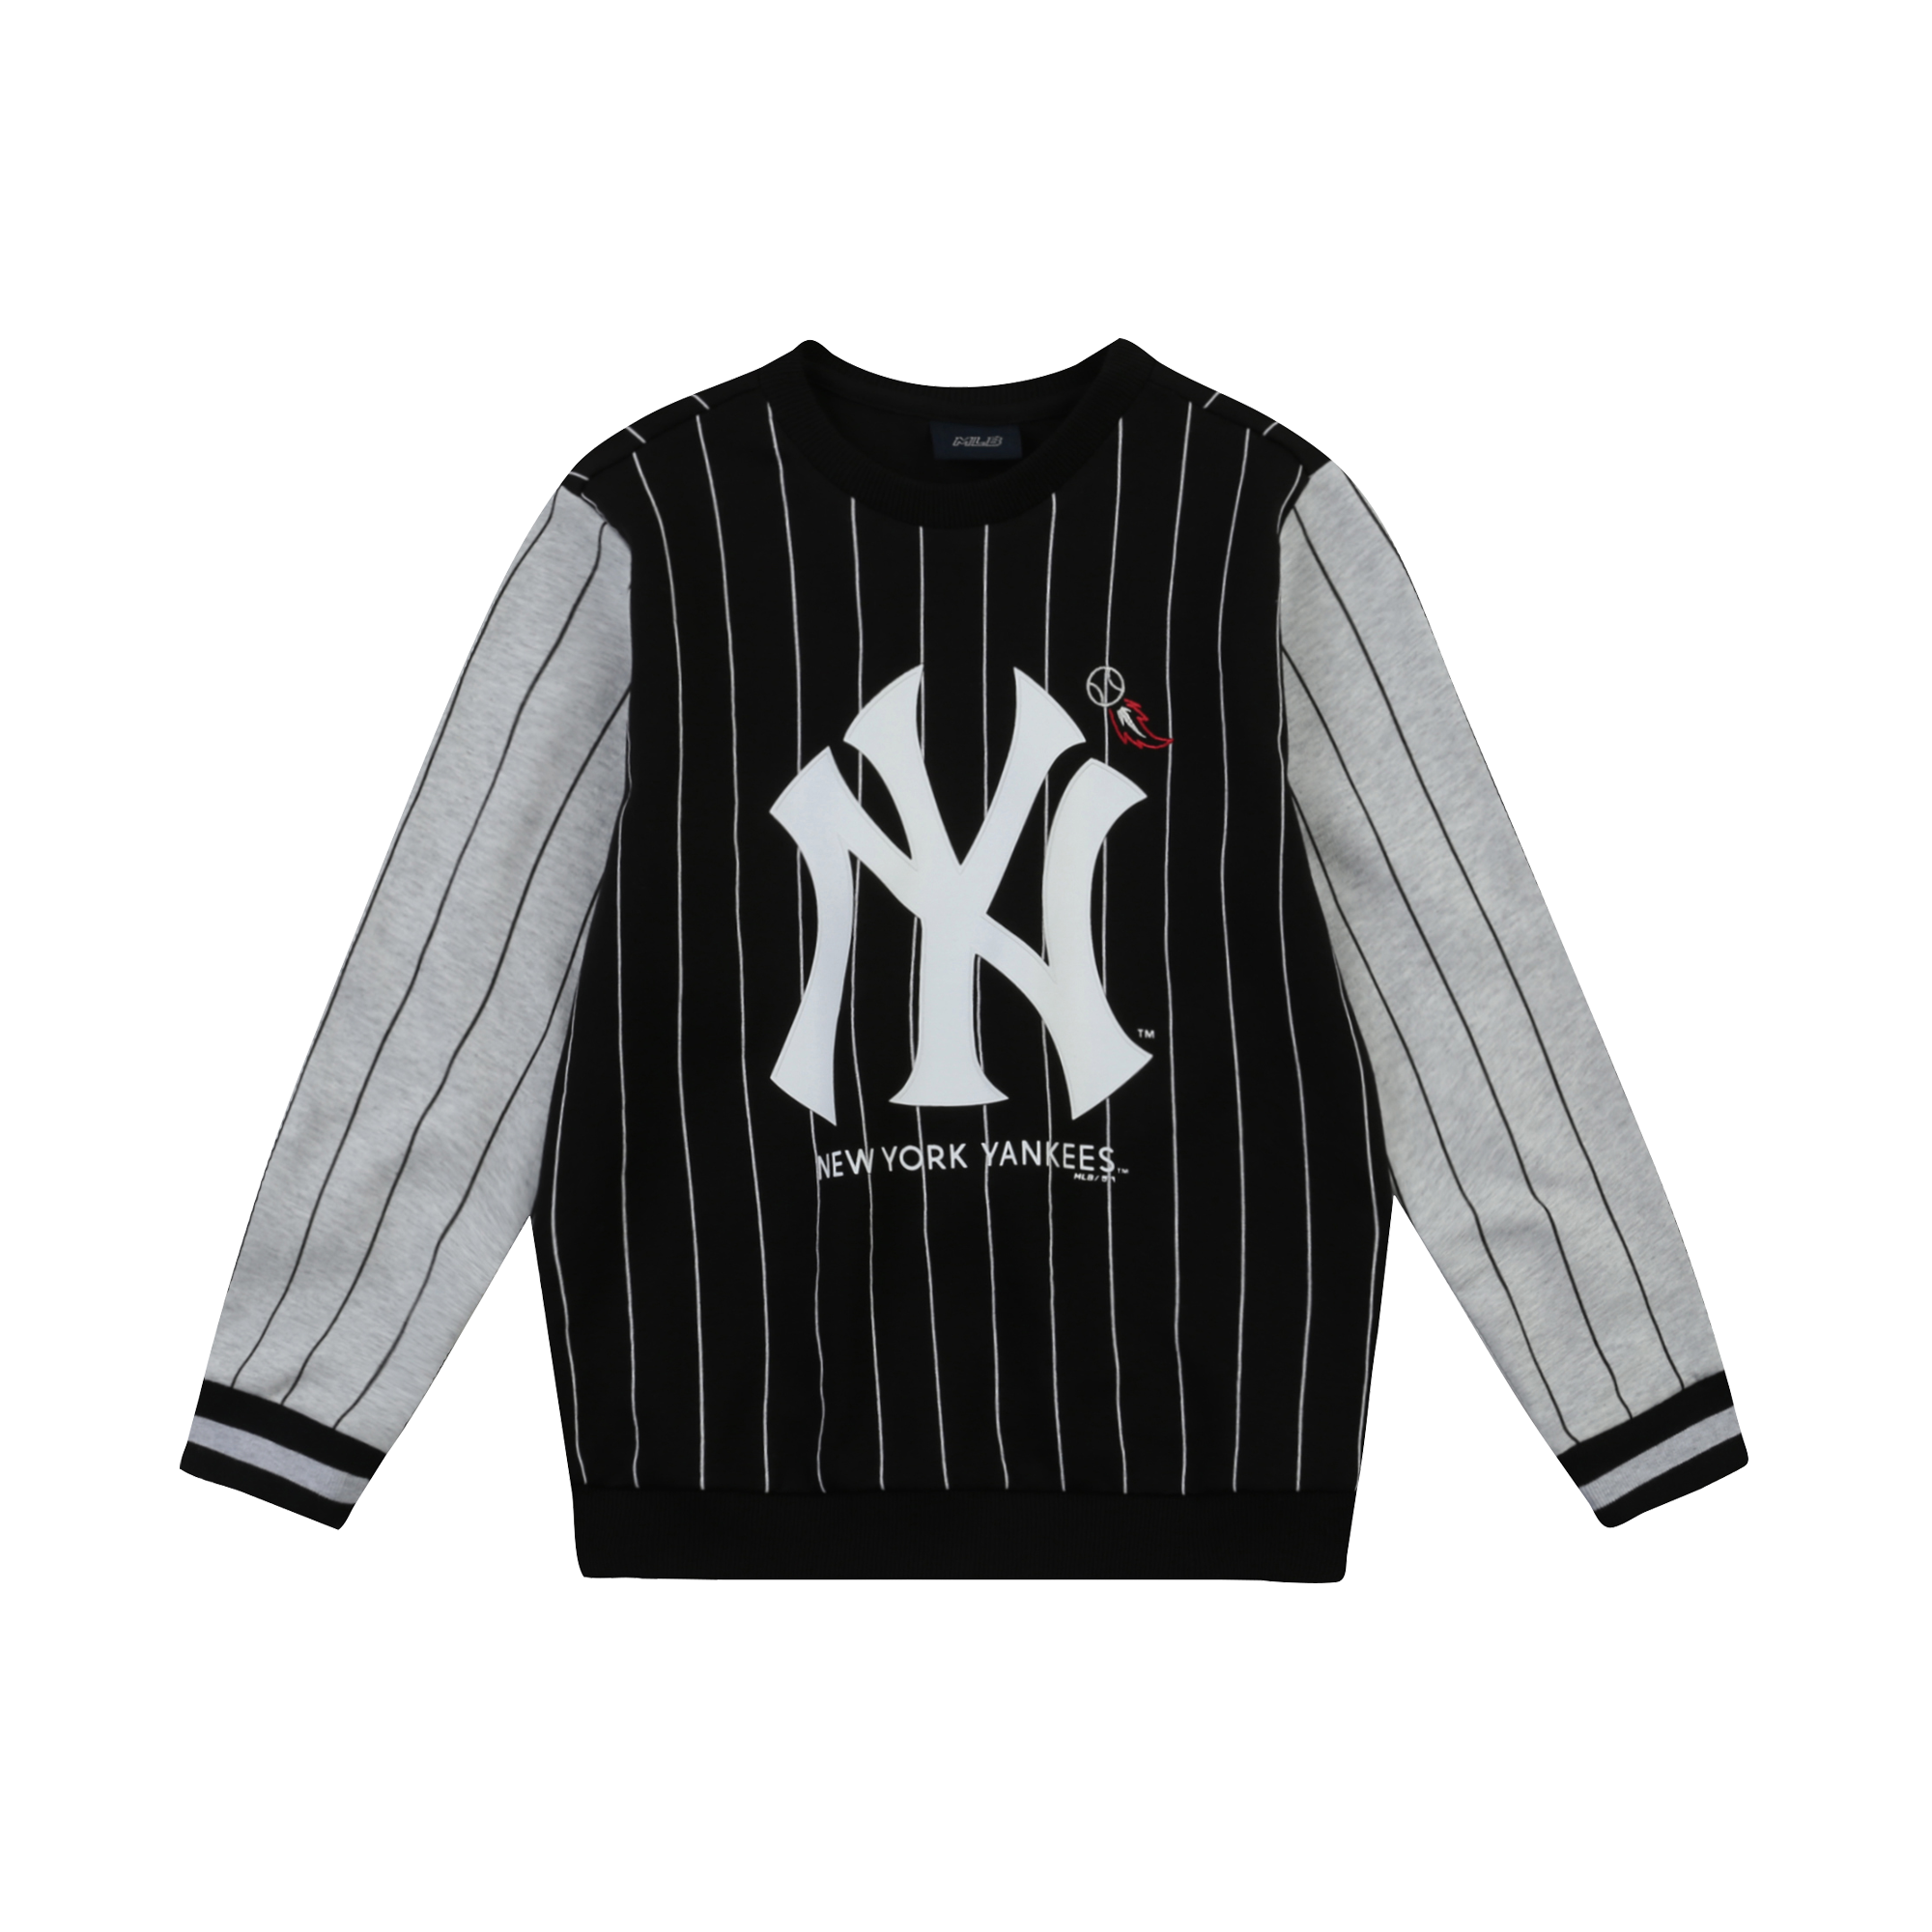 NEW YORK YANKEES UNISEX PIN STRIPE SWEATSHIRT